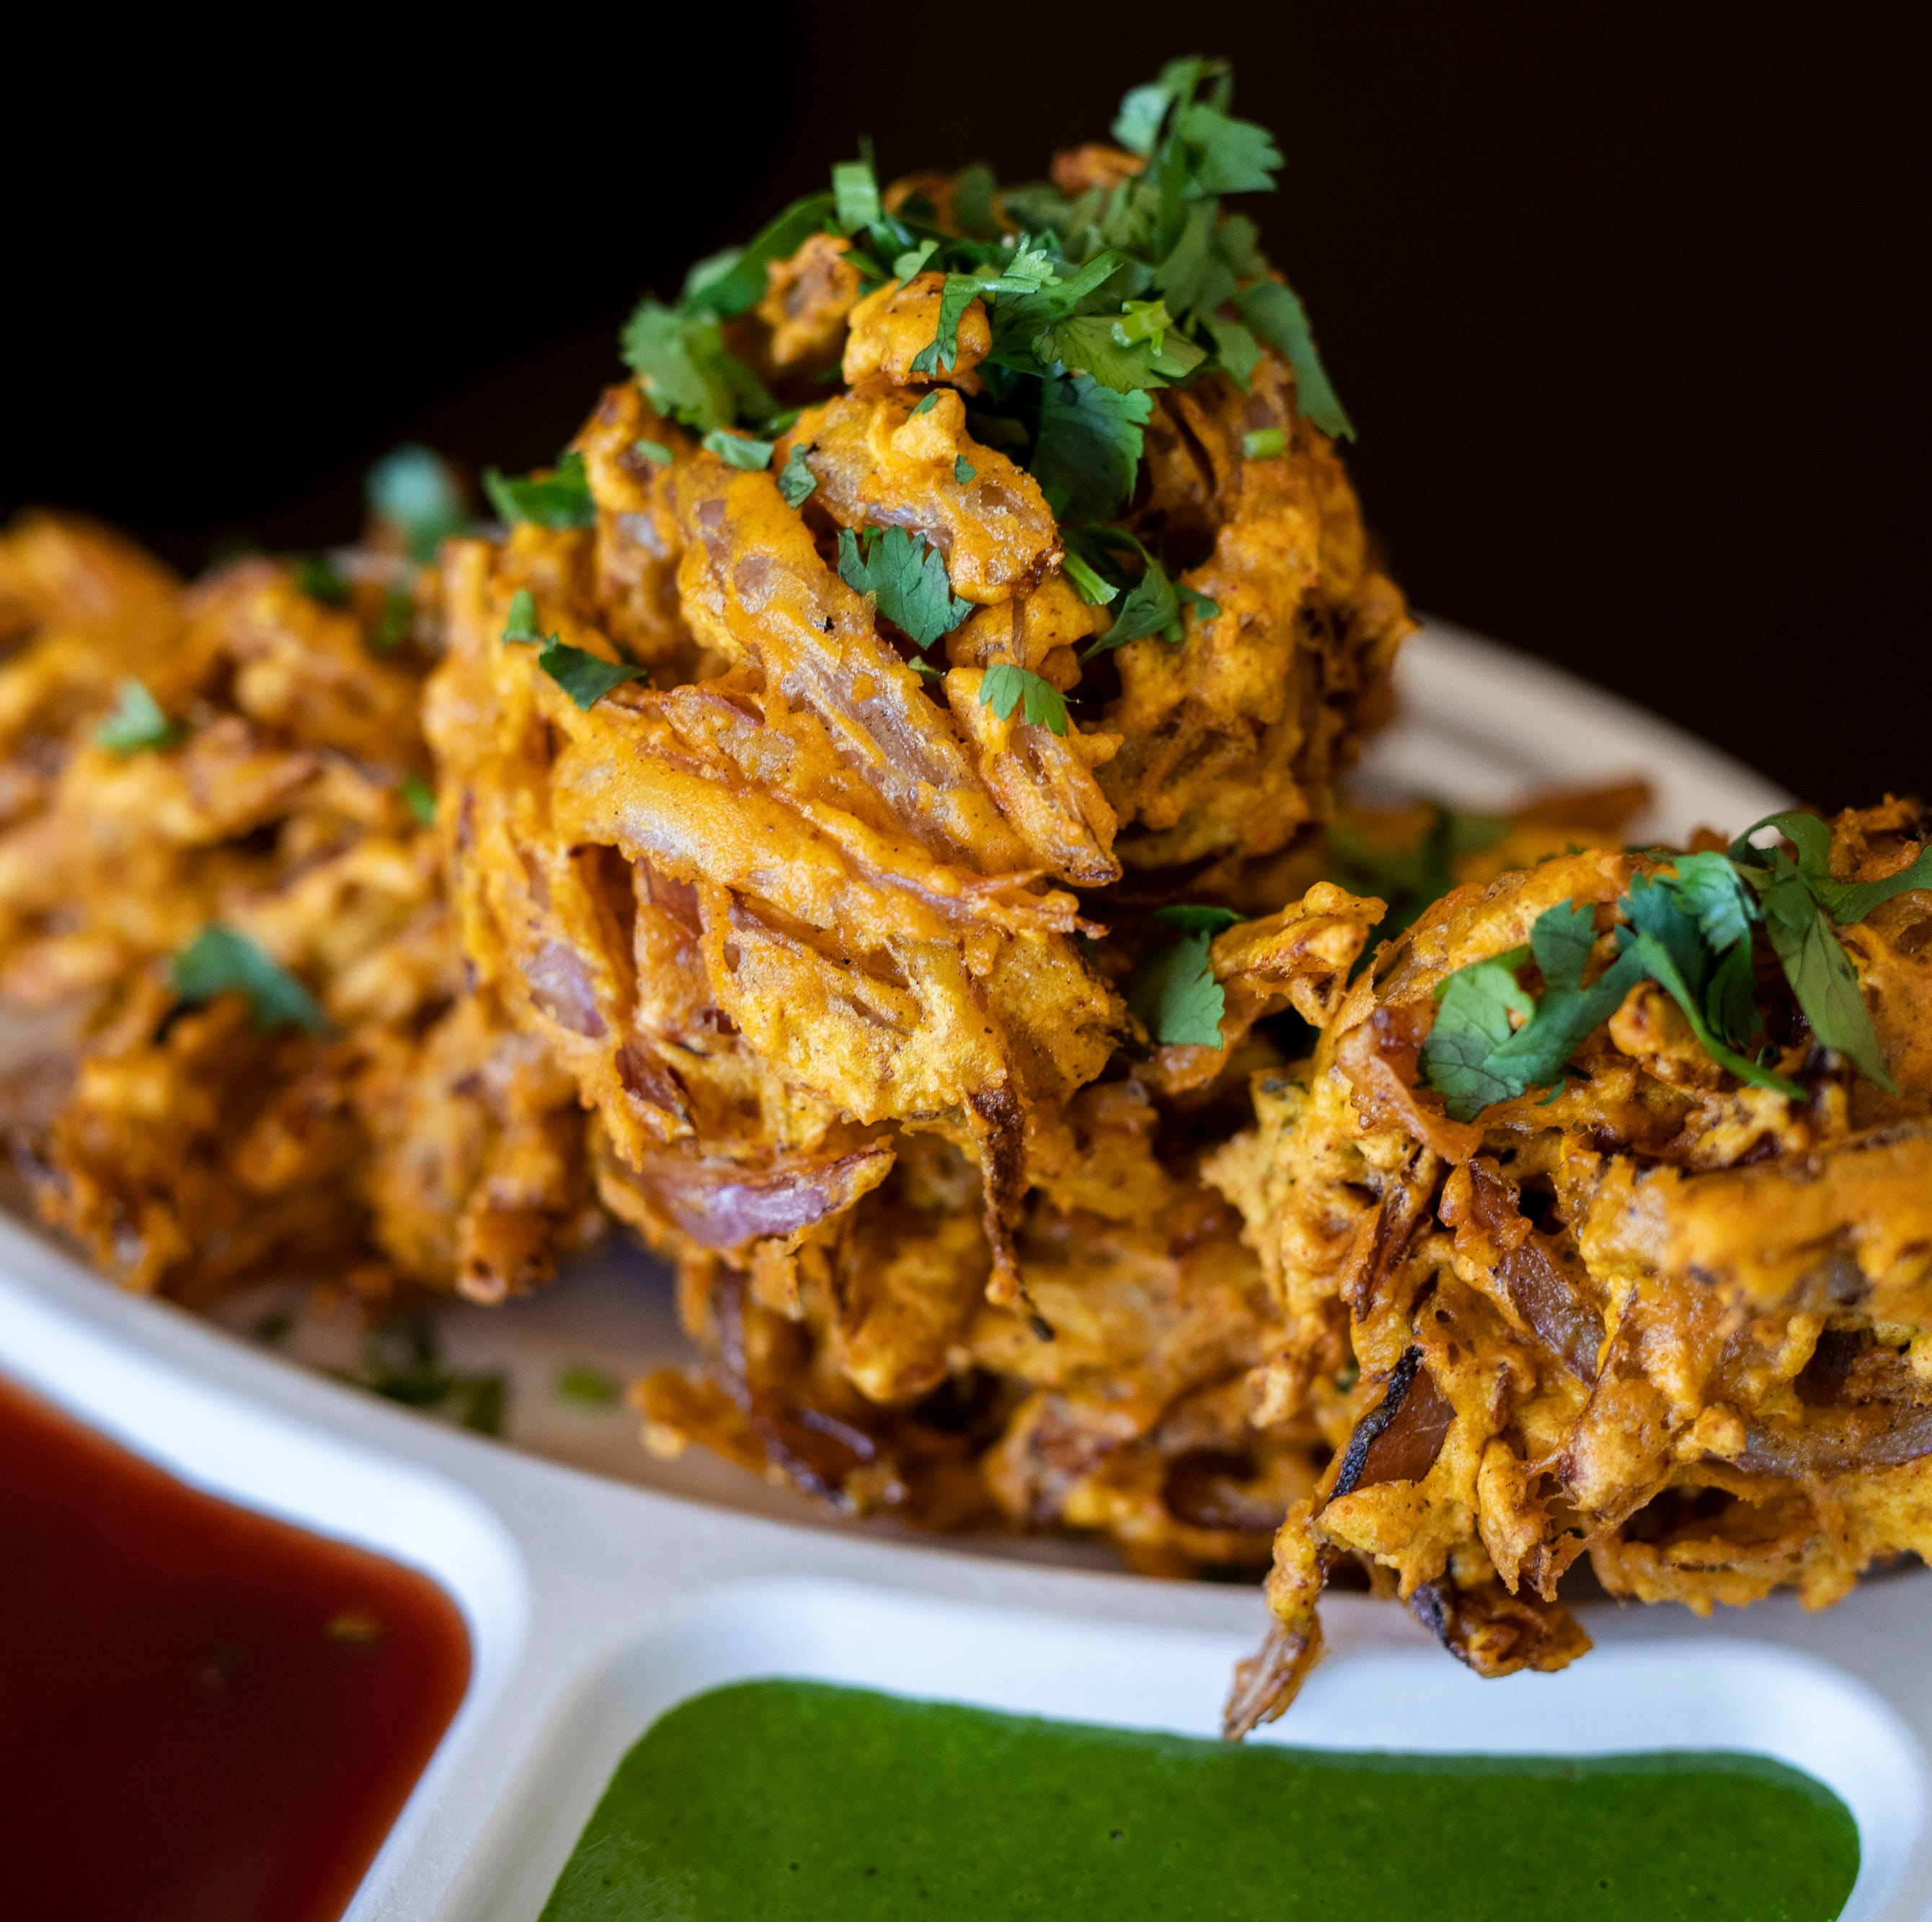 Shreeji fills a niche in Louisville with authentic Indian street food